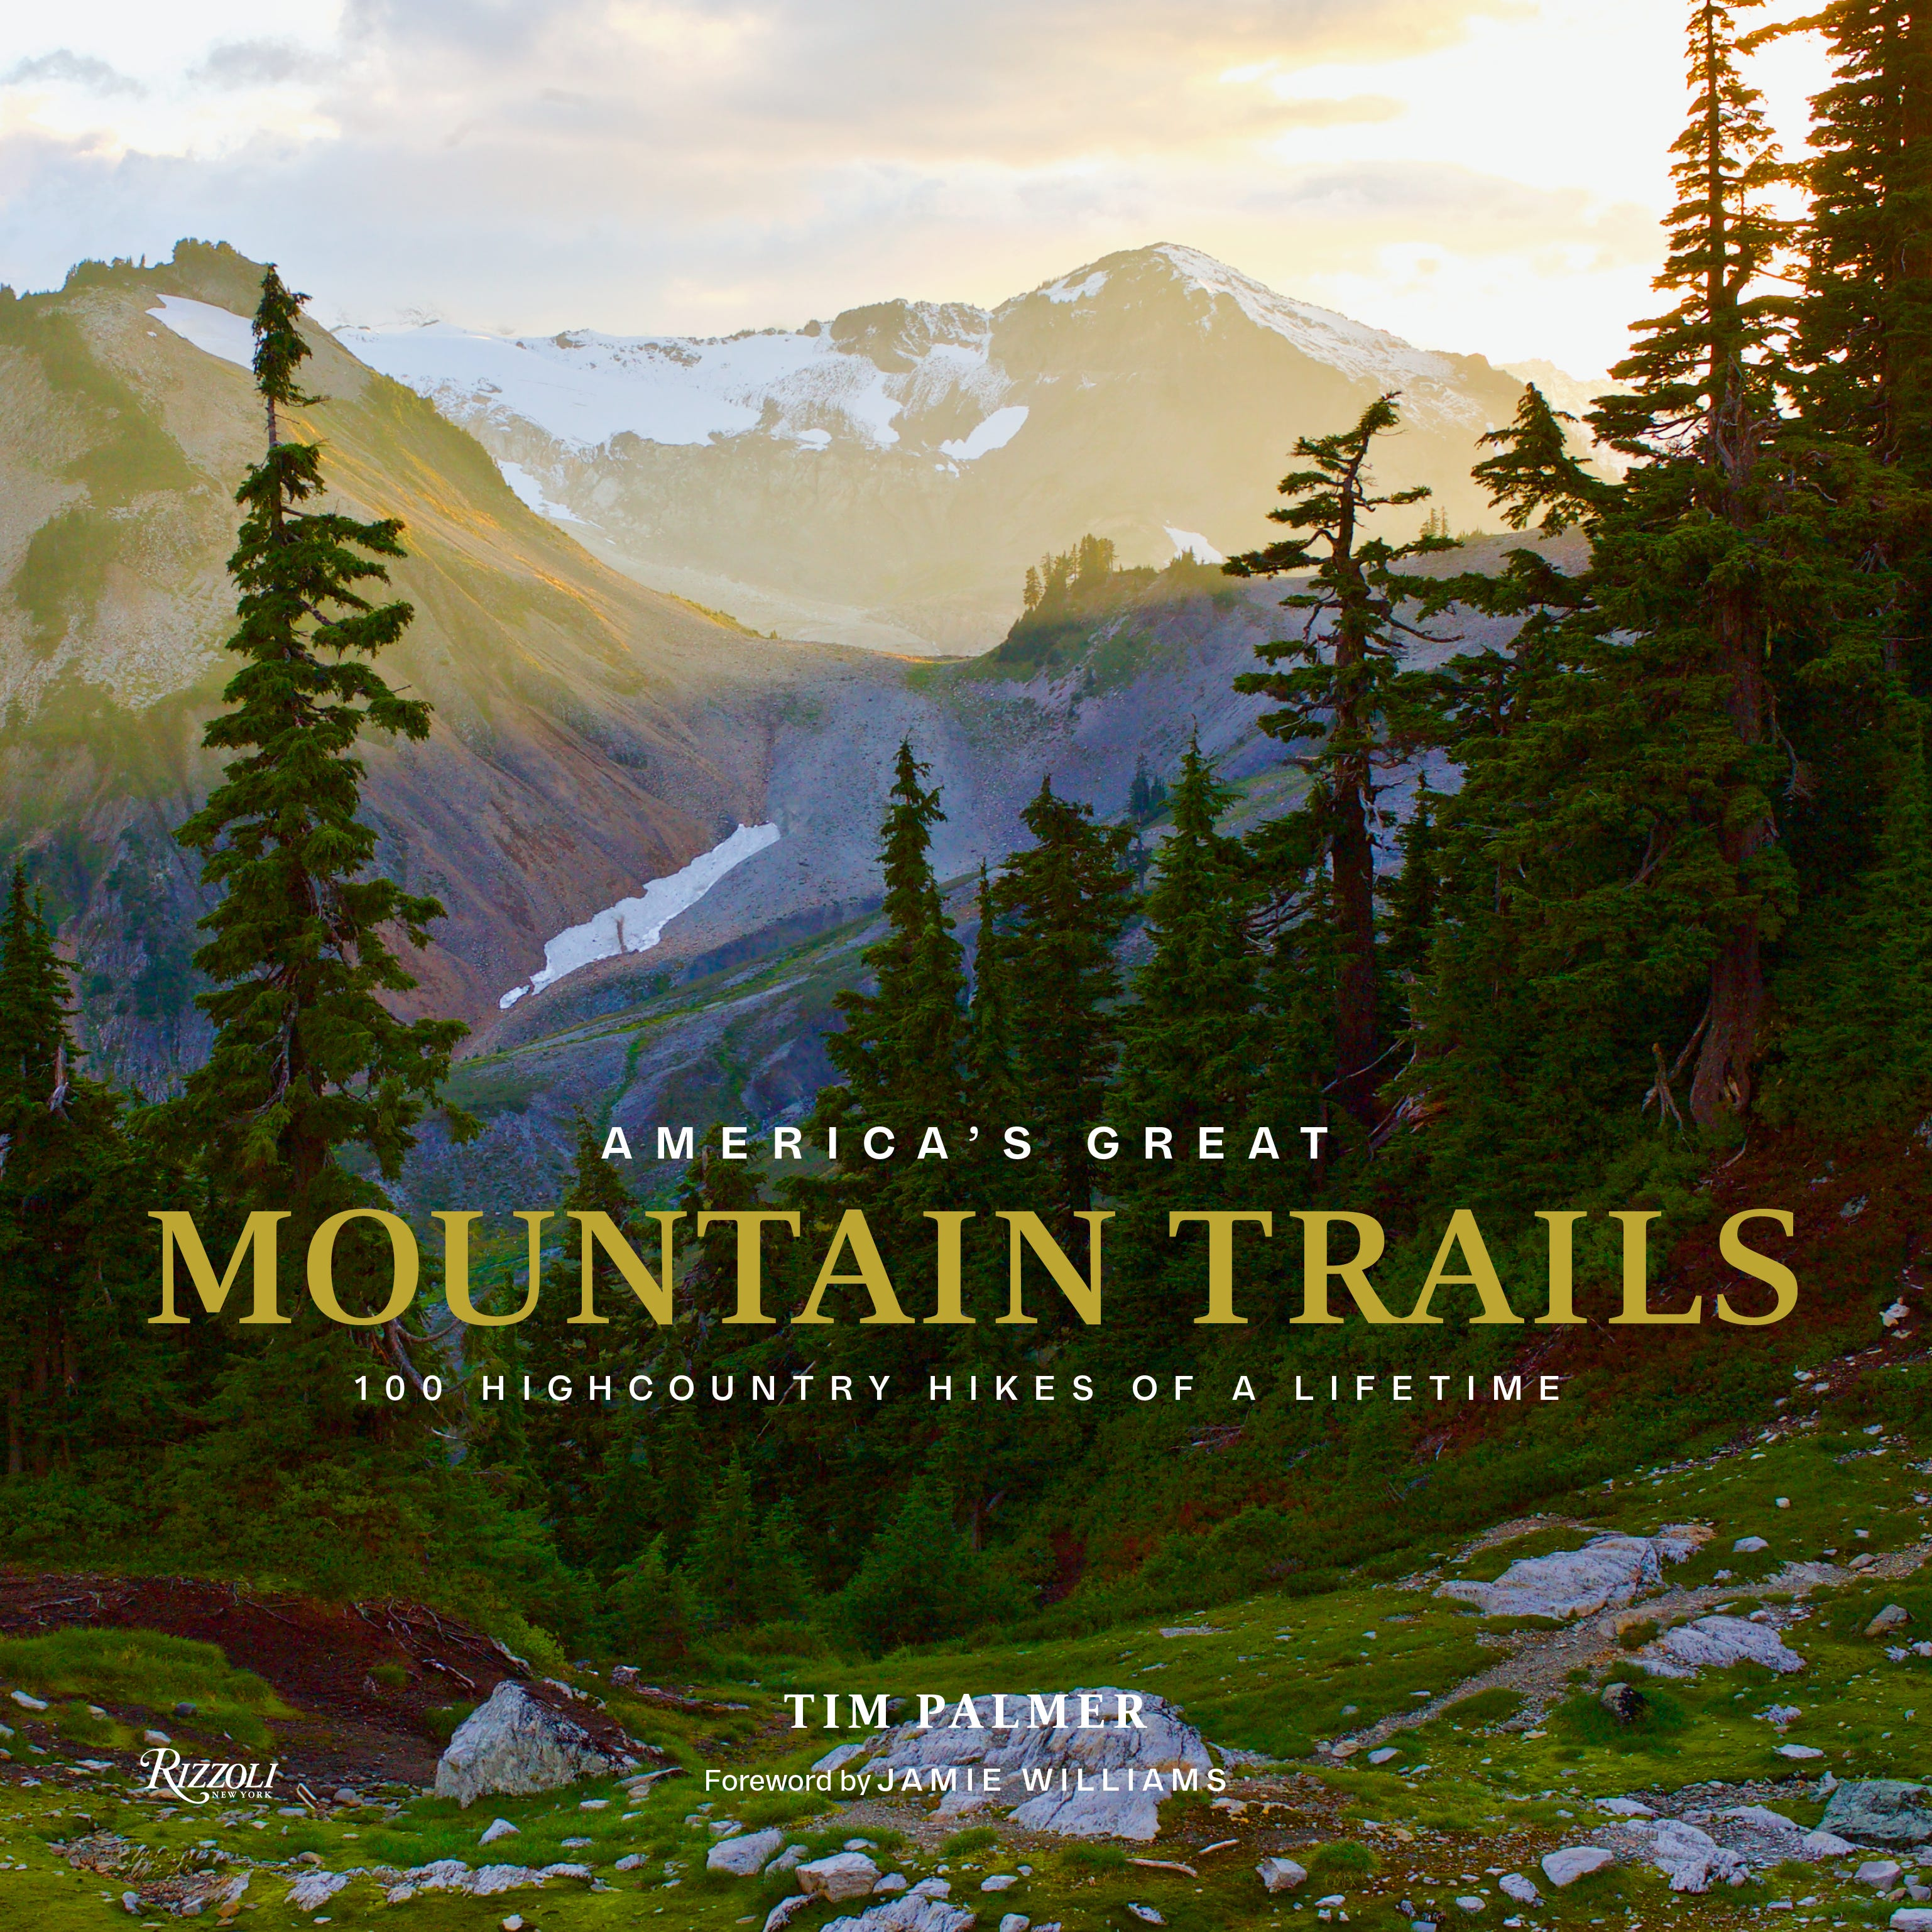 10 great mountain trails, from California to Maine